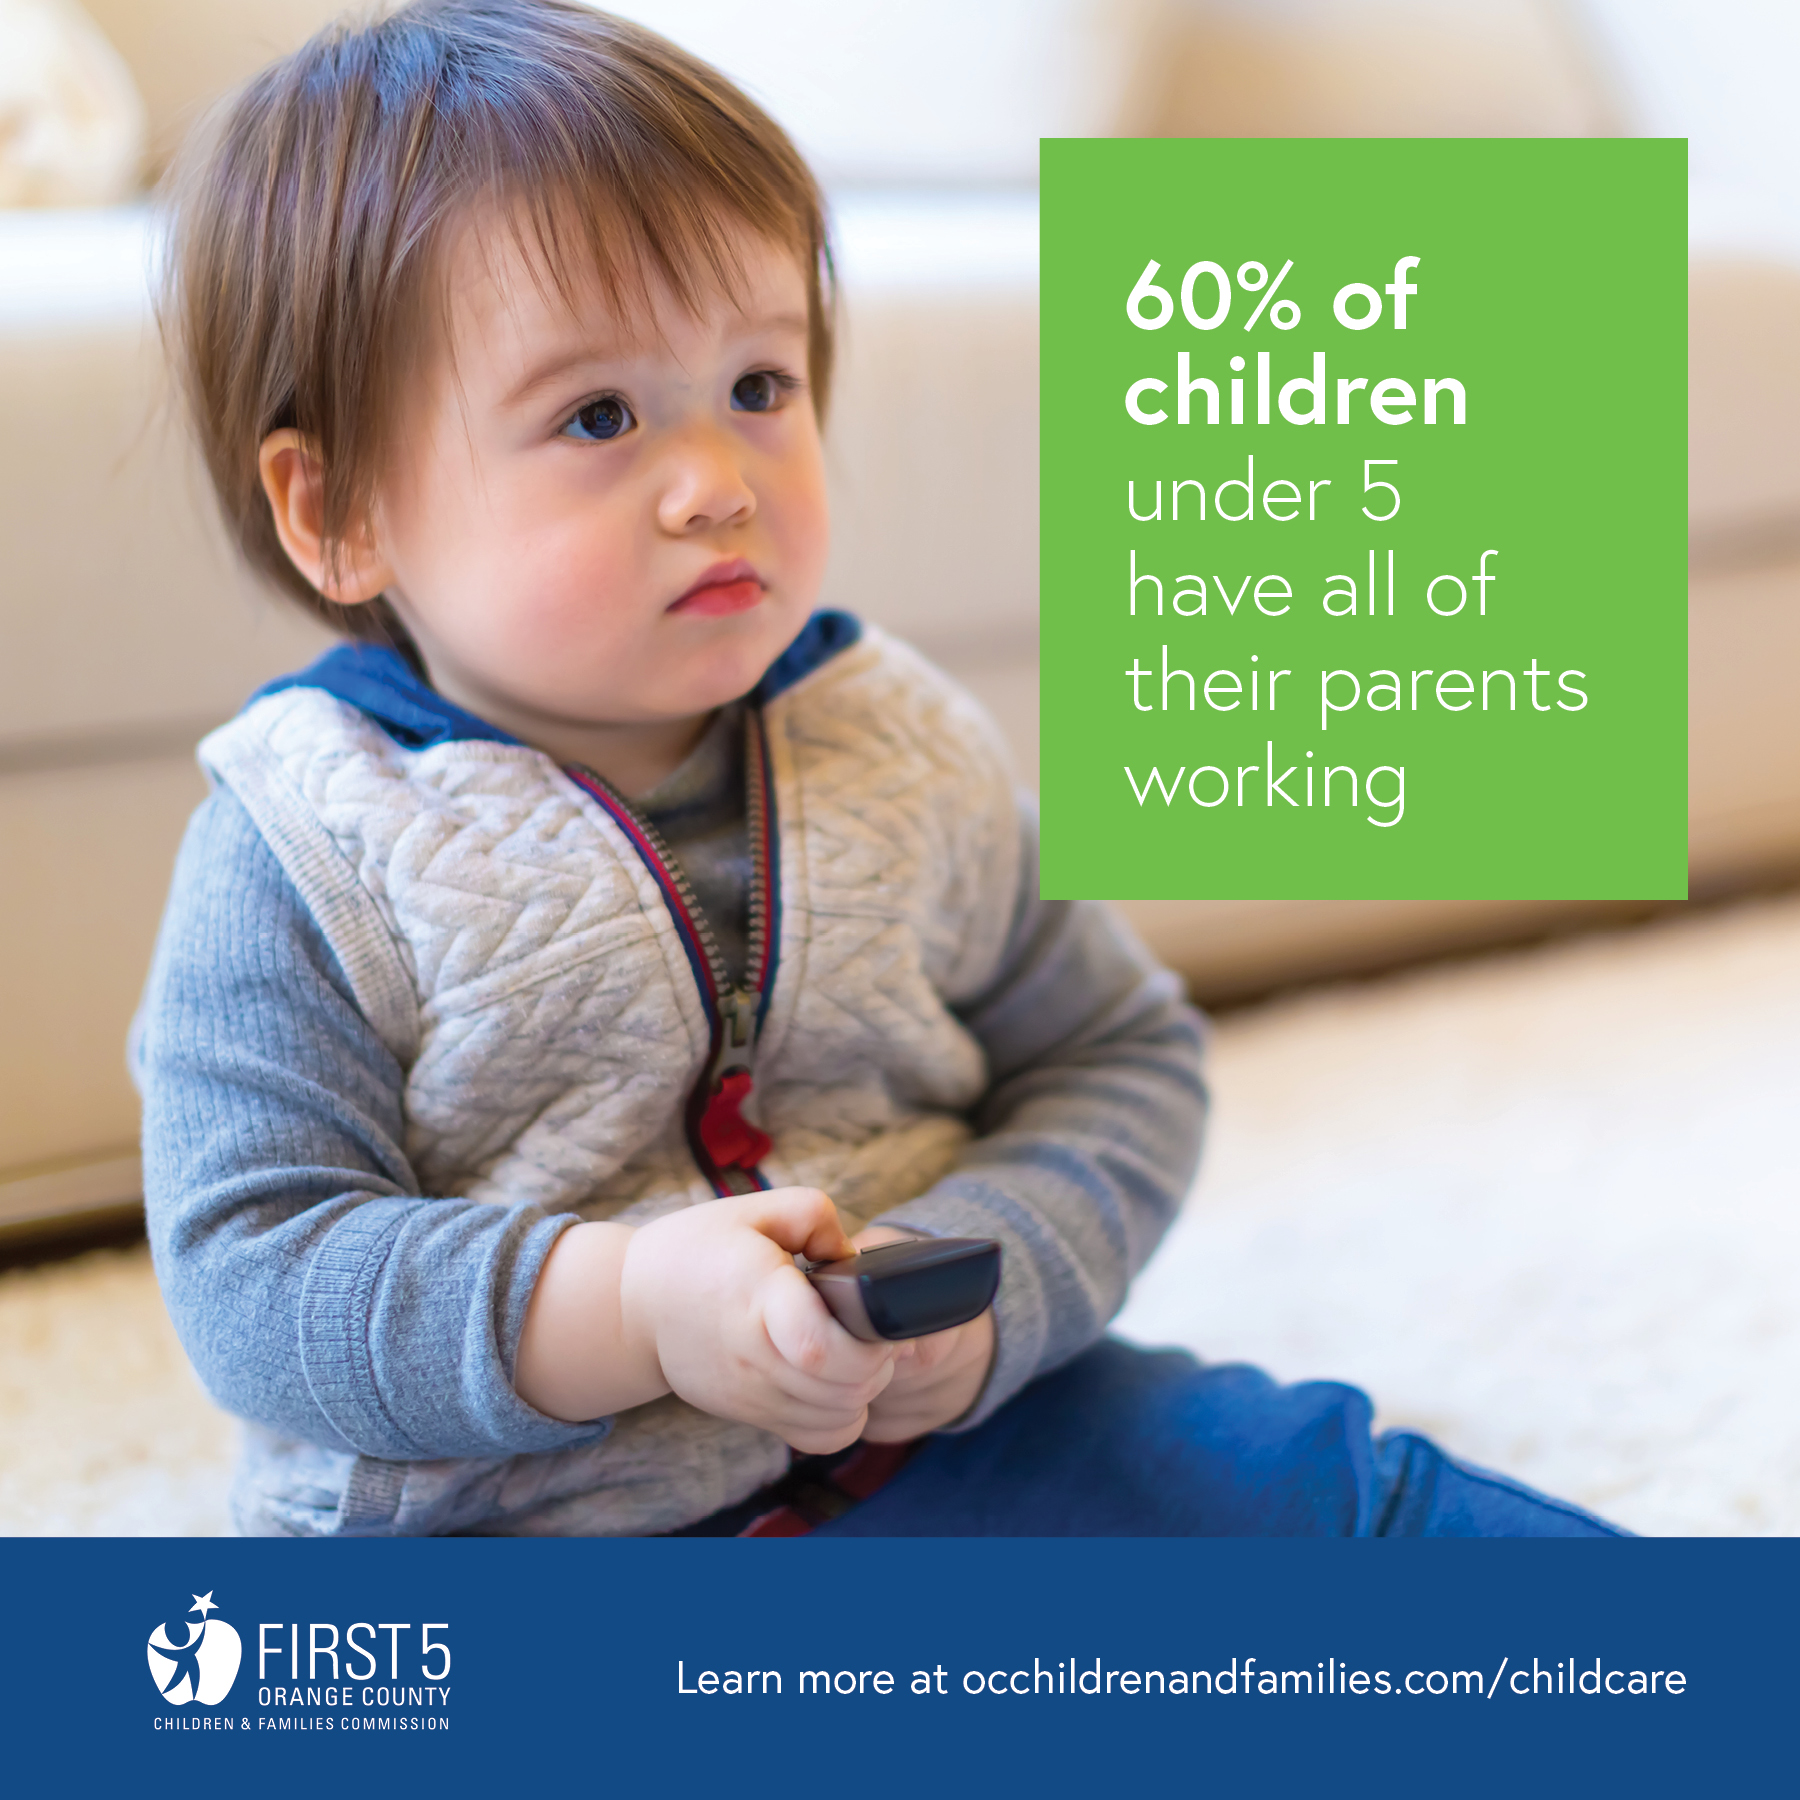 60% of children under 5 have all of their parents working